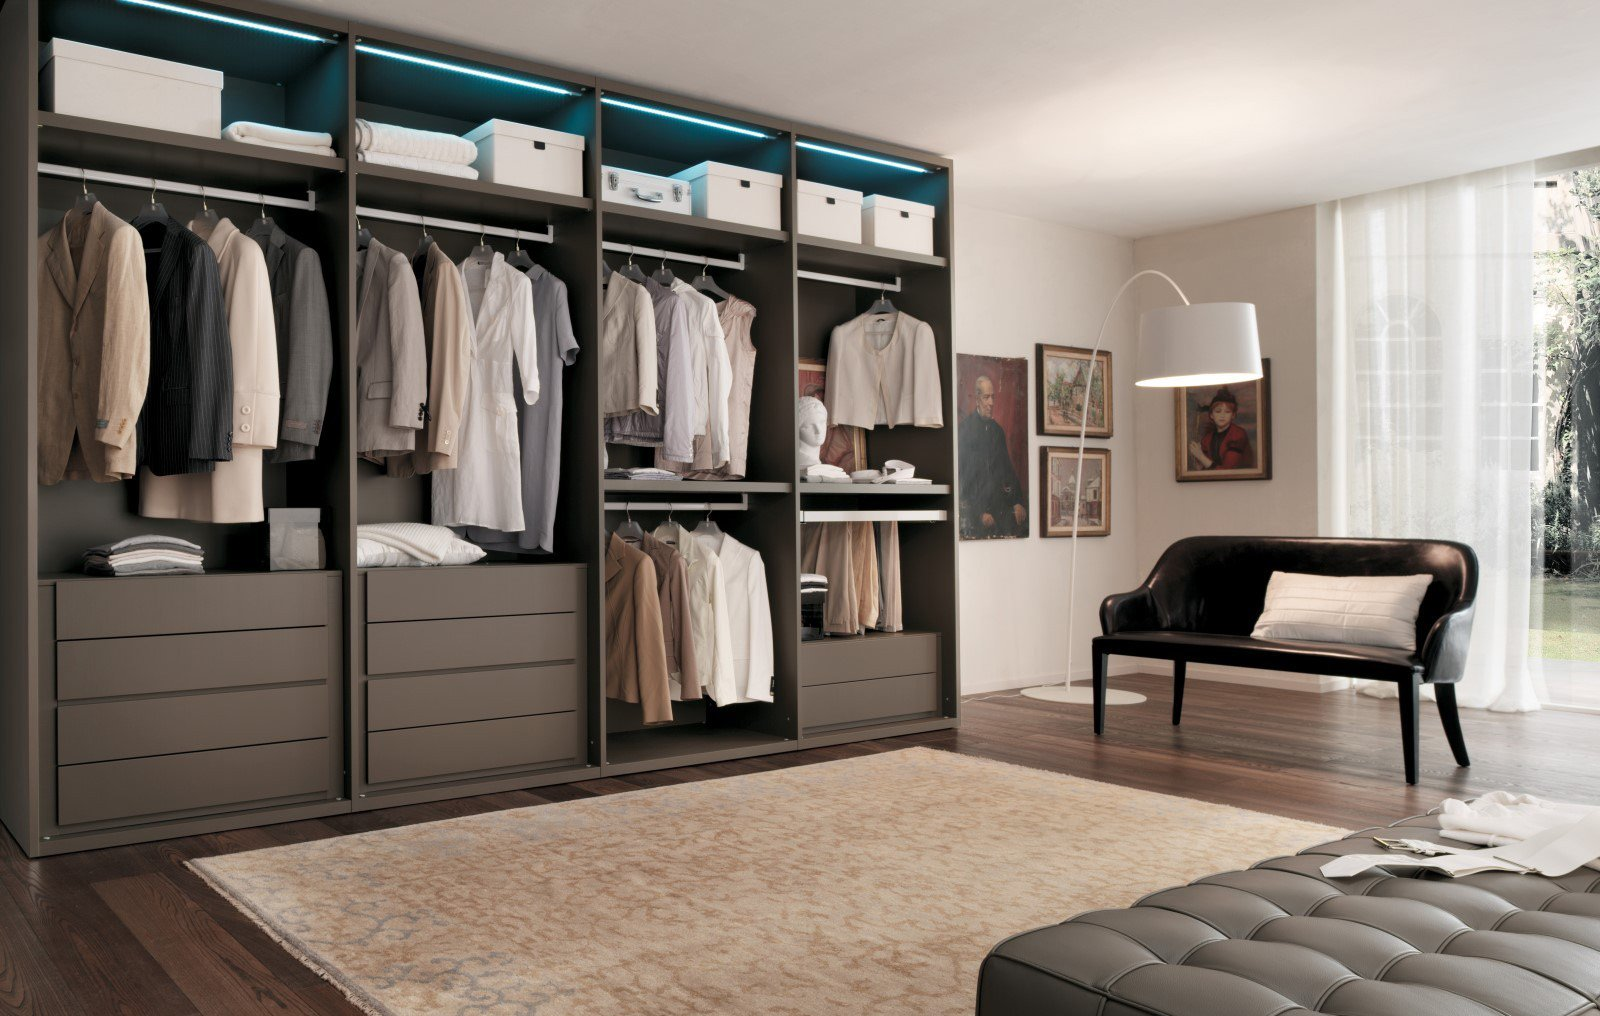 Walk In Wardrobes Including Drawers Shelves Hanging Fully Installed